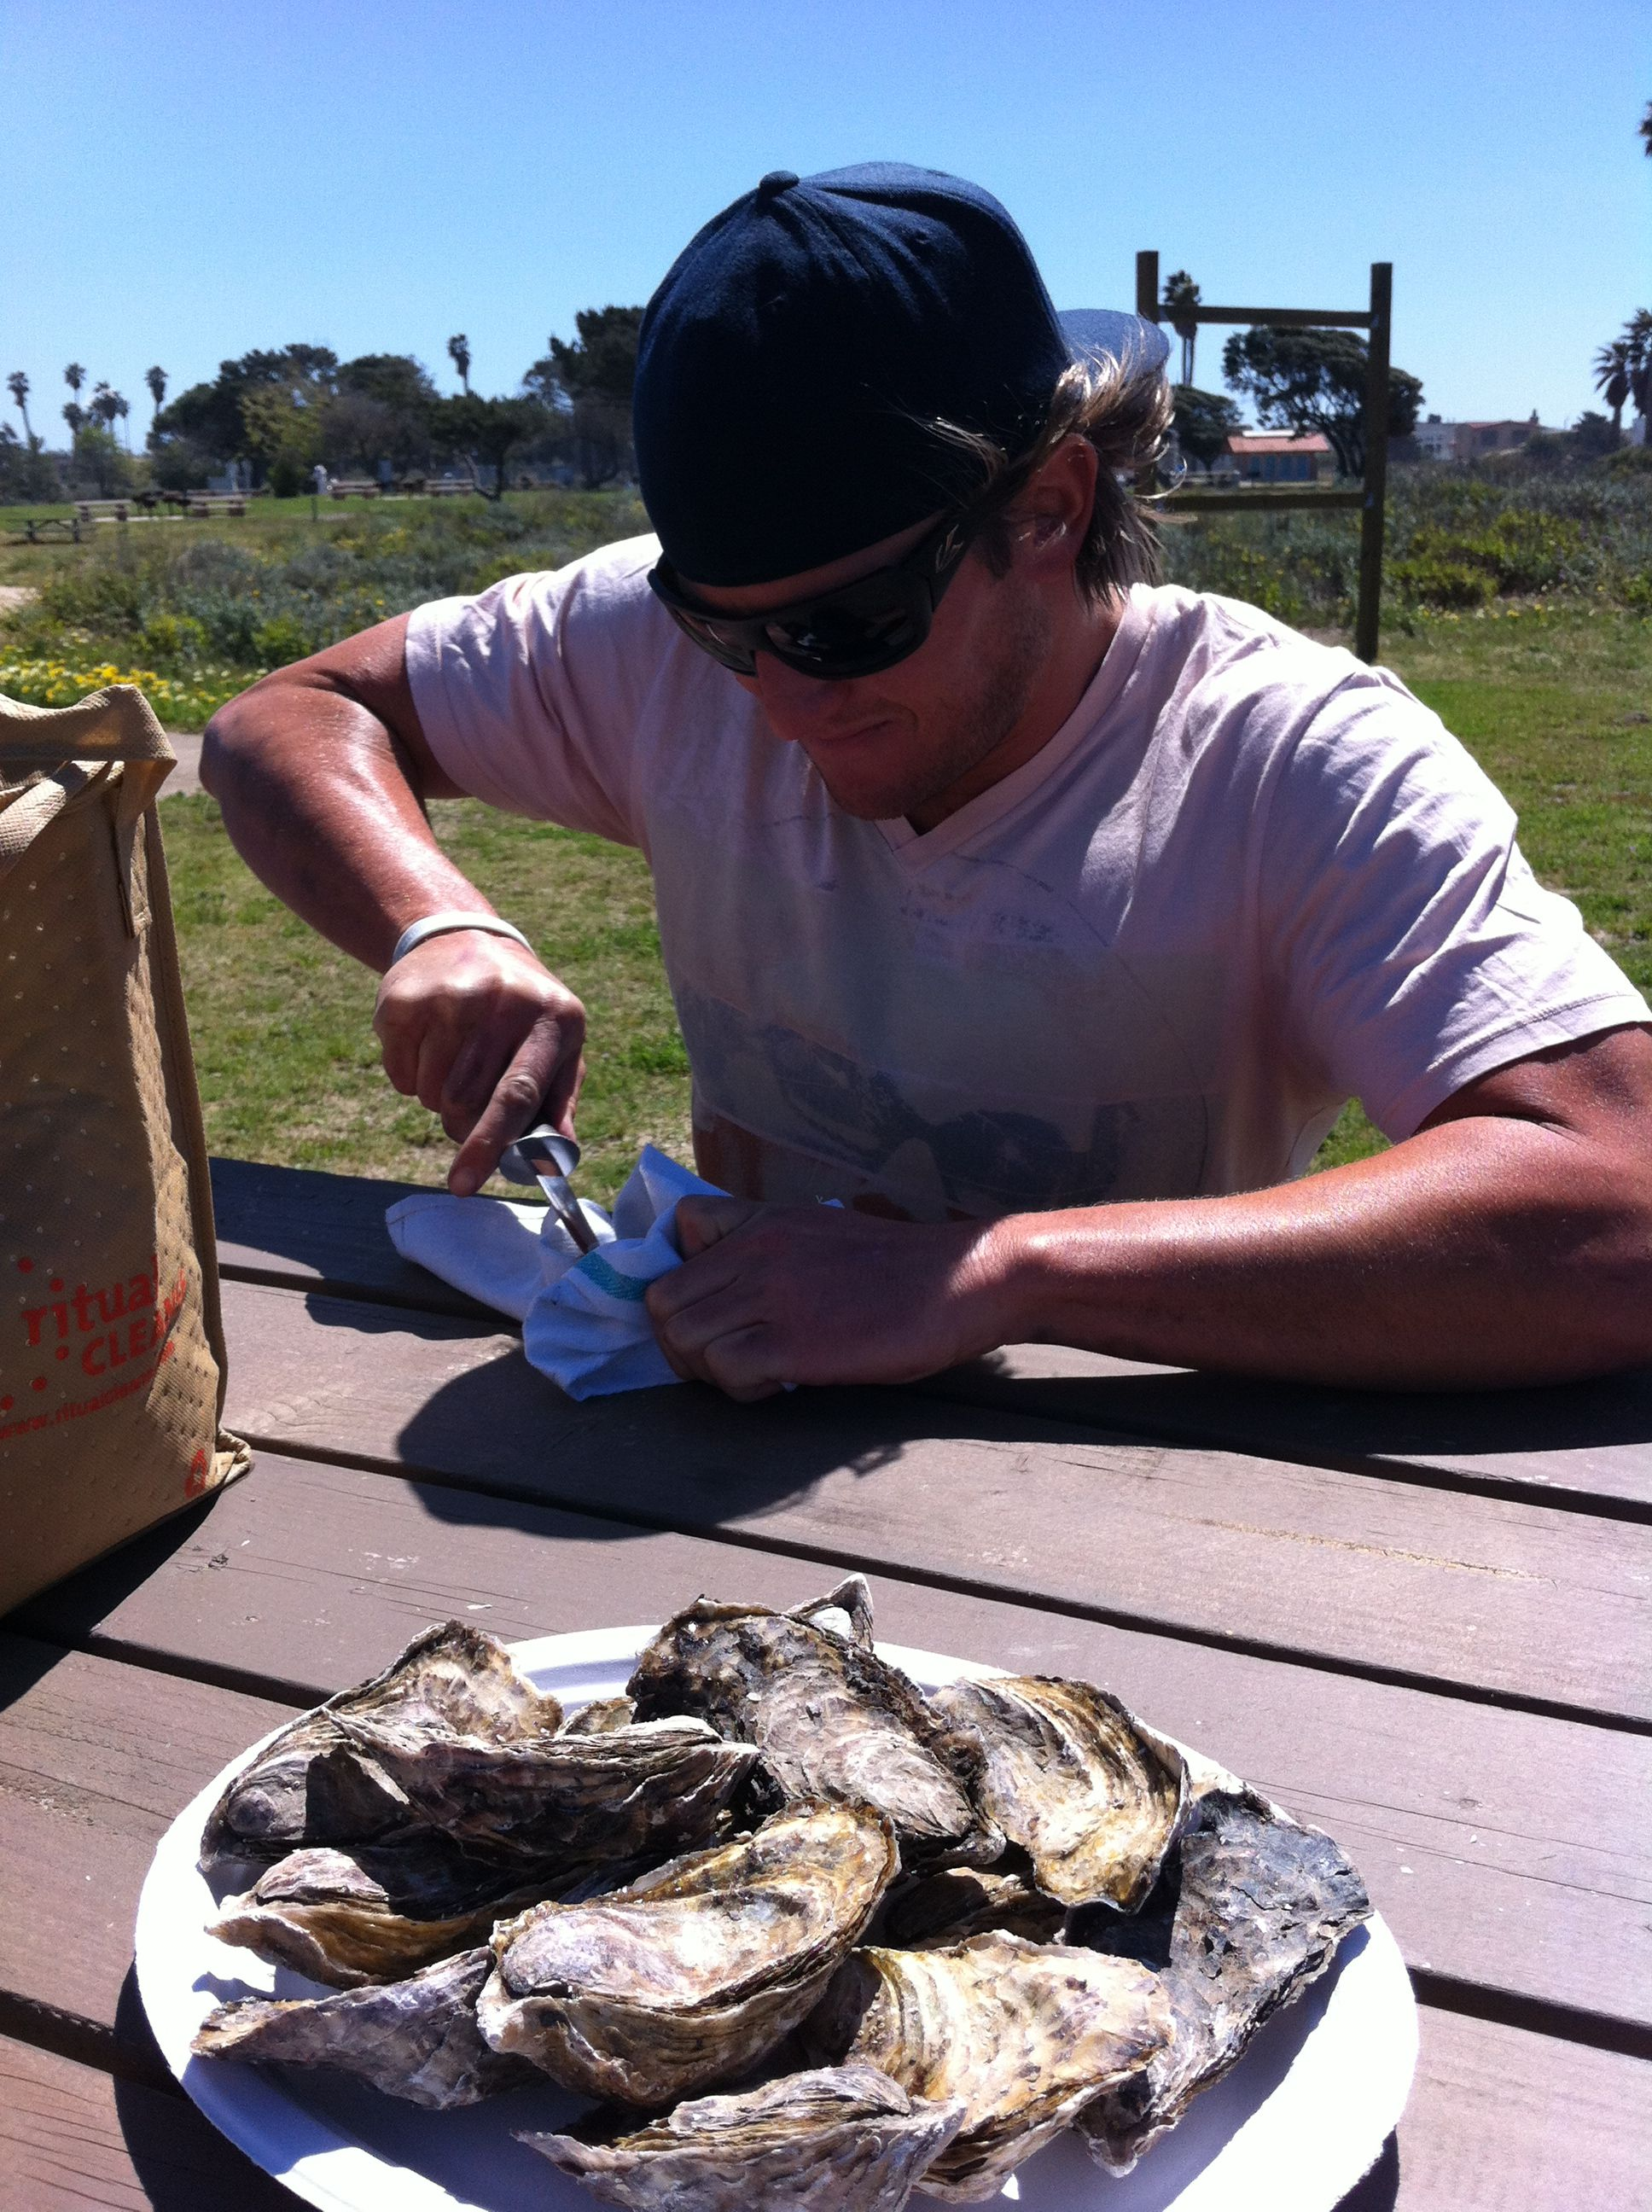 Shucking my own oysters at the Jolly Oyster Truck in Ventura, CA.  The Jolly Oyster, Ventura State Beach, Pacific Oysters http://www.thejollyoyster.com/